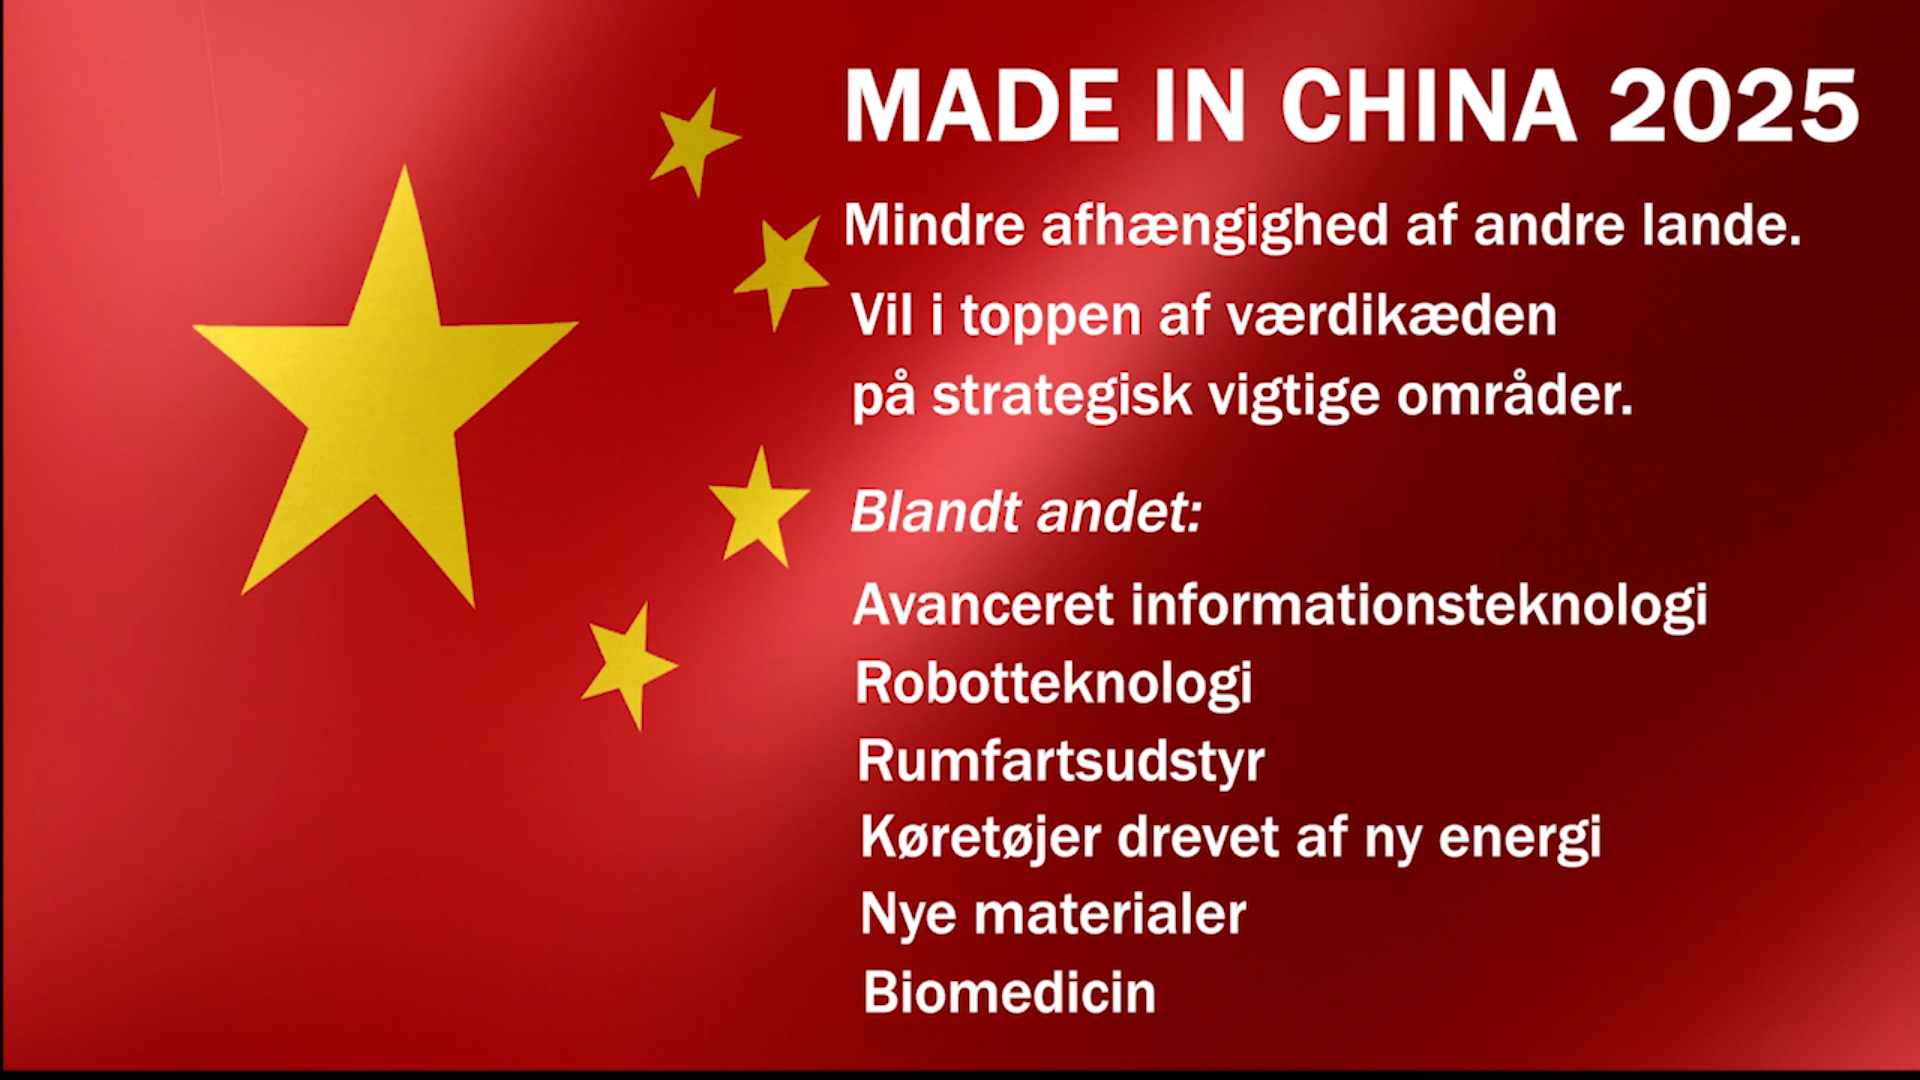 China's goals of becoming the world leader in a wide range of technologically important areas frighten the West.